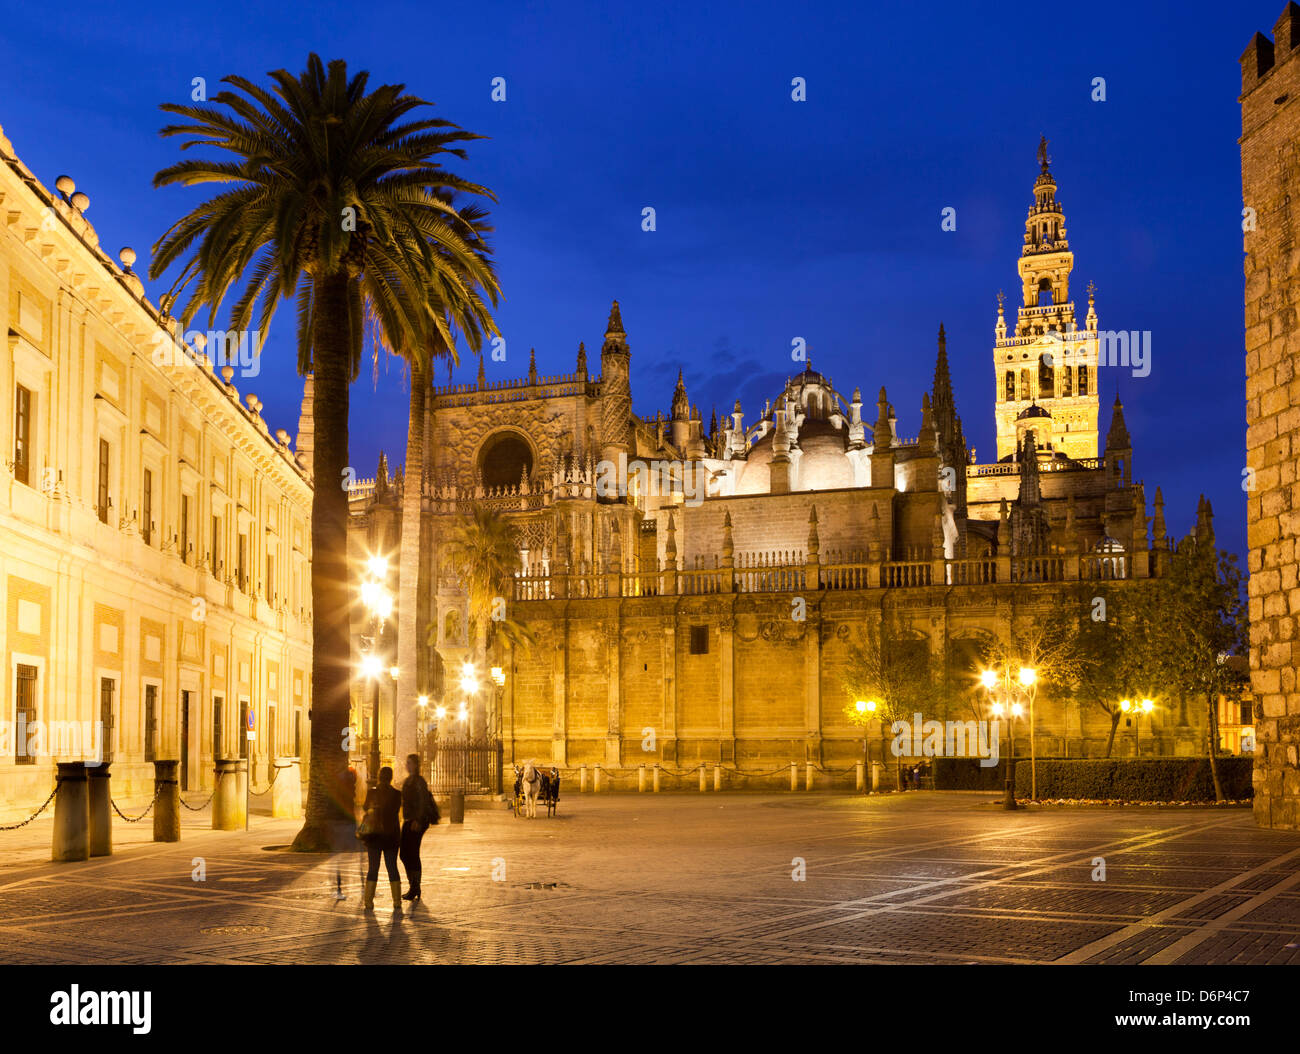 Seville cathedral (catedral) and the Giralda at night, UNESCO World Heritage Site, Seville, Andalucia, Spain, Europe - Stock Image